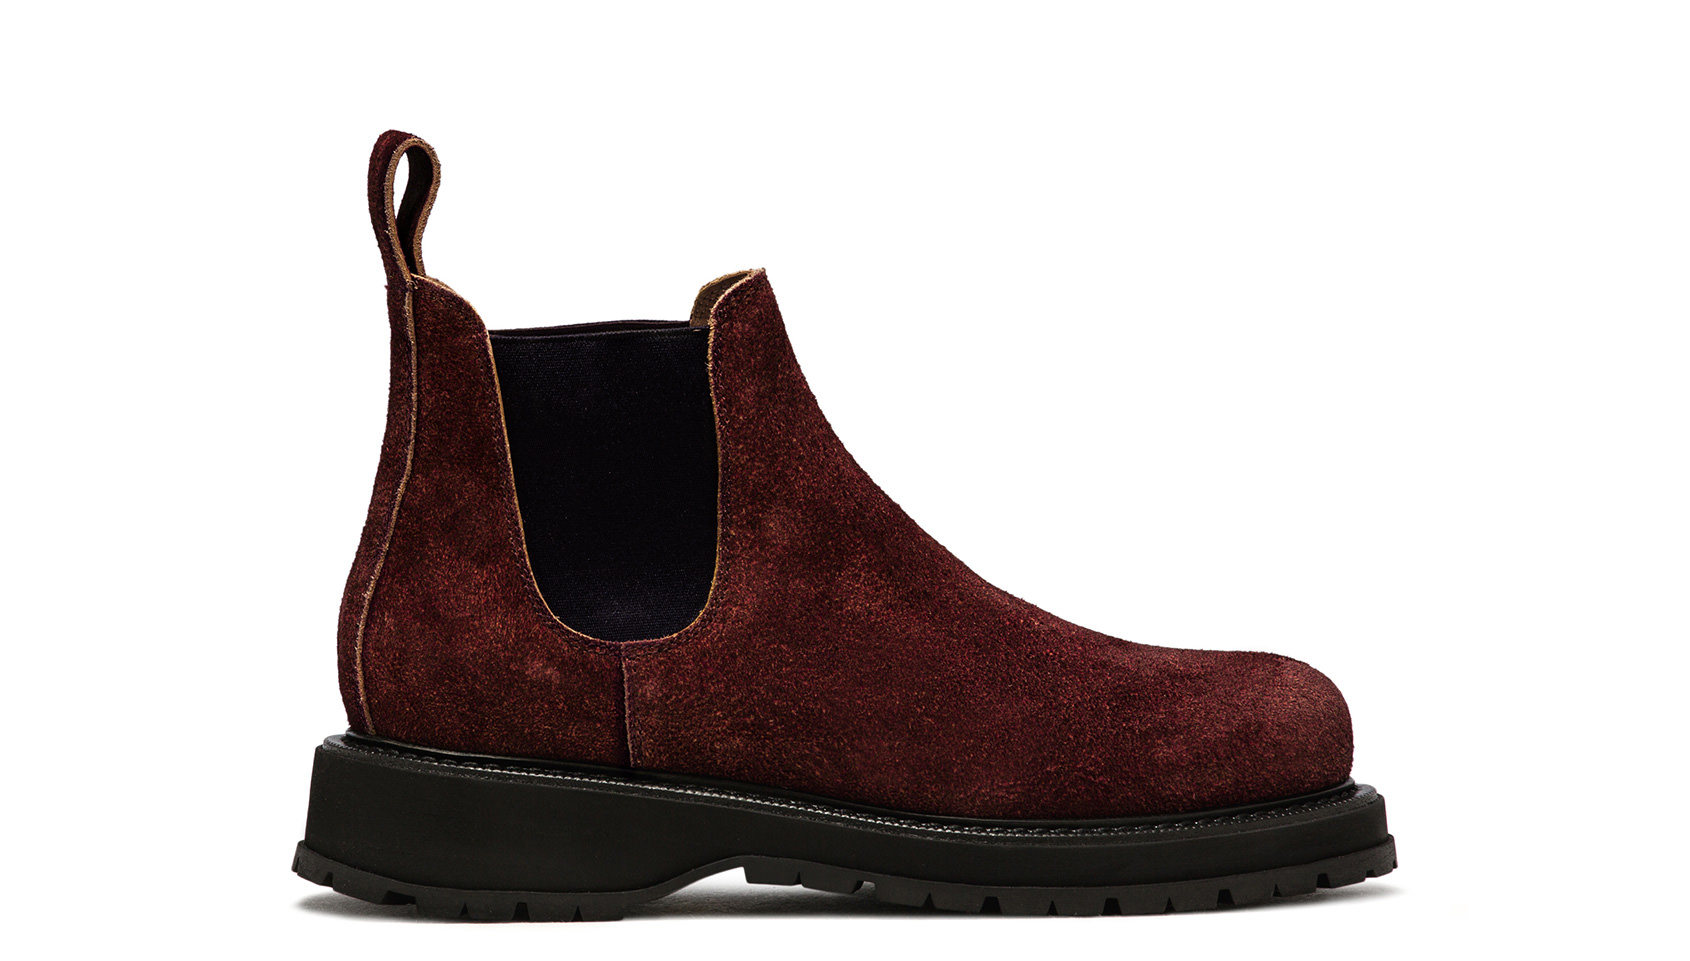 BUTTERO: ZENO CHELSEA BOOTS IN DARK CHILE MONKEY CALF LEATHER